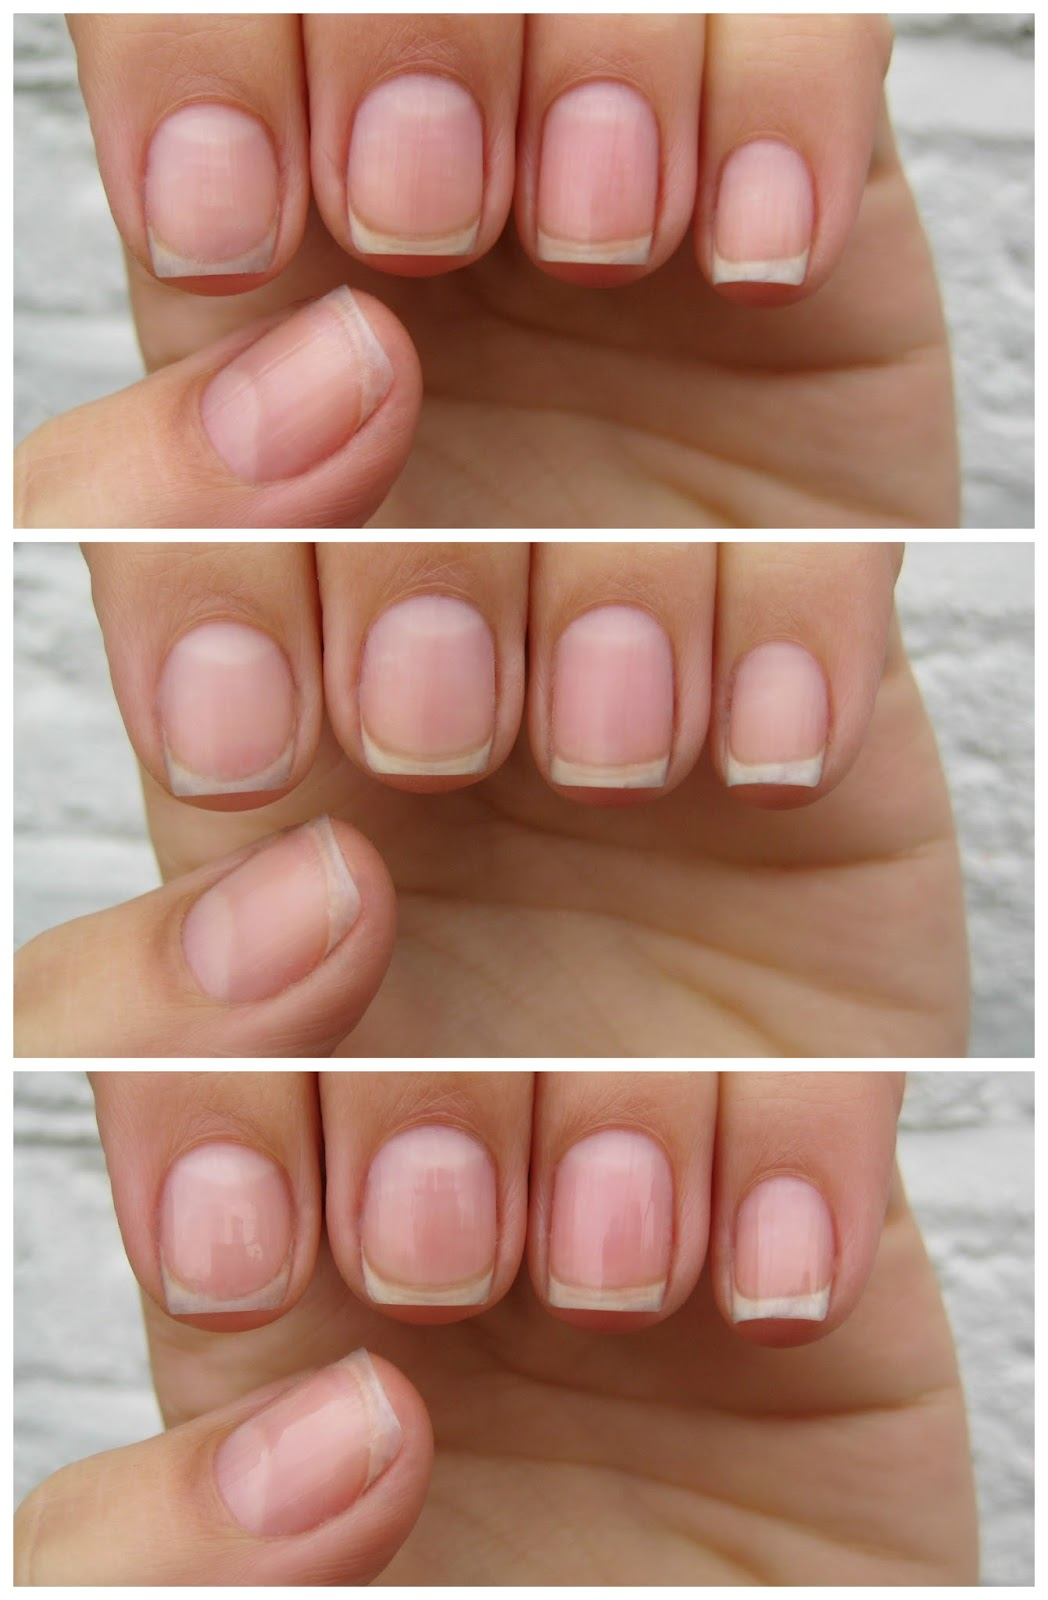 The Trio Of Photos Above Show My Nails Before During And After You Can See By Middle Photo How Well First Roller Smoothed Out Ridges